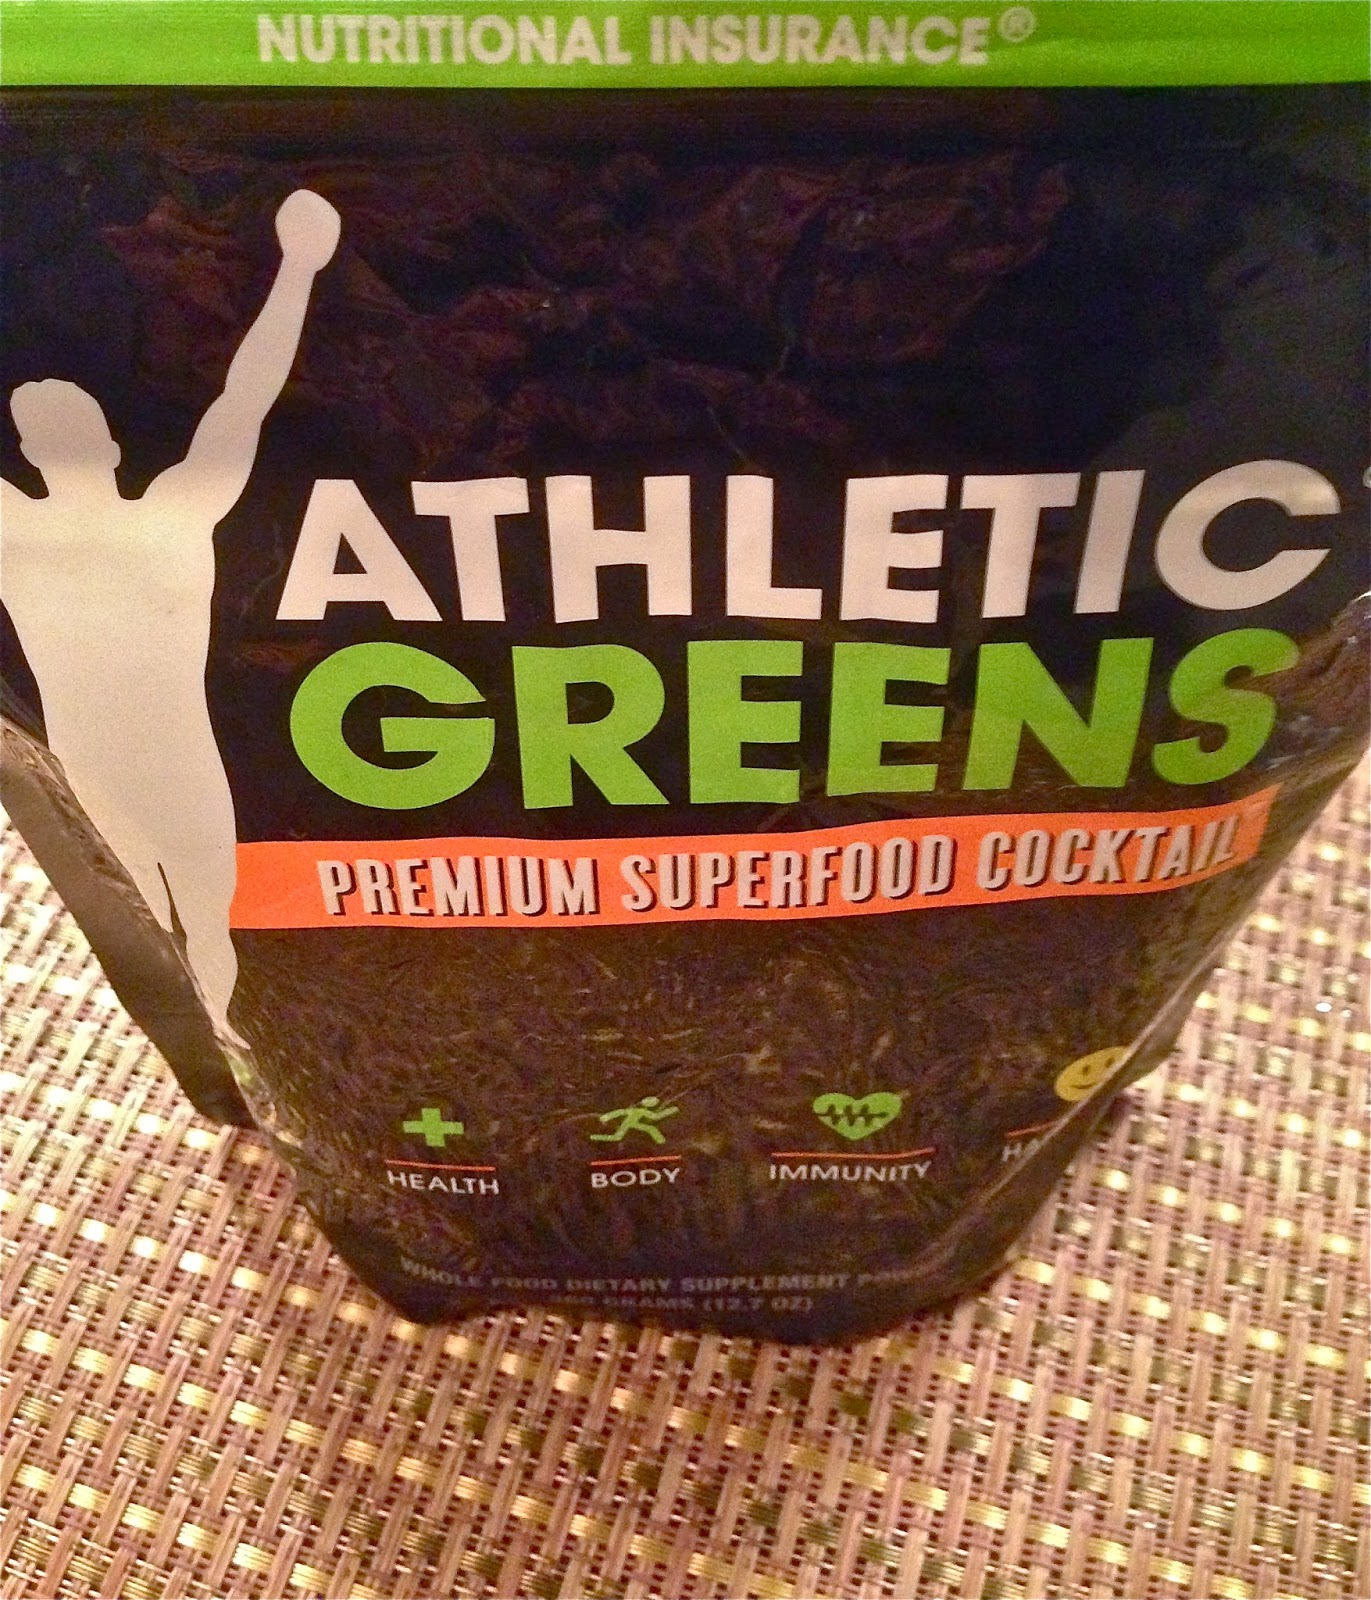 http://tracking.athleticgreens.com/aff_c?offer_id=123&aff_id=2201&source=TheBalancedBeauty.com, Athletic Greens